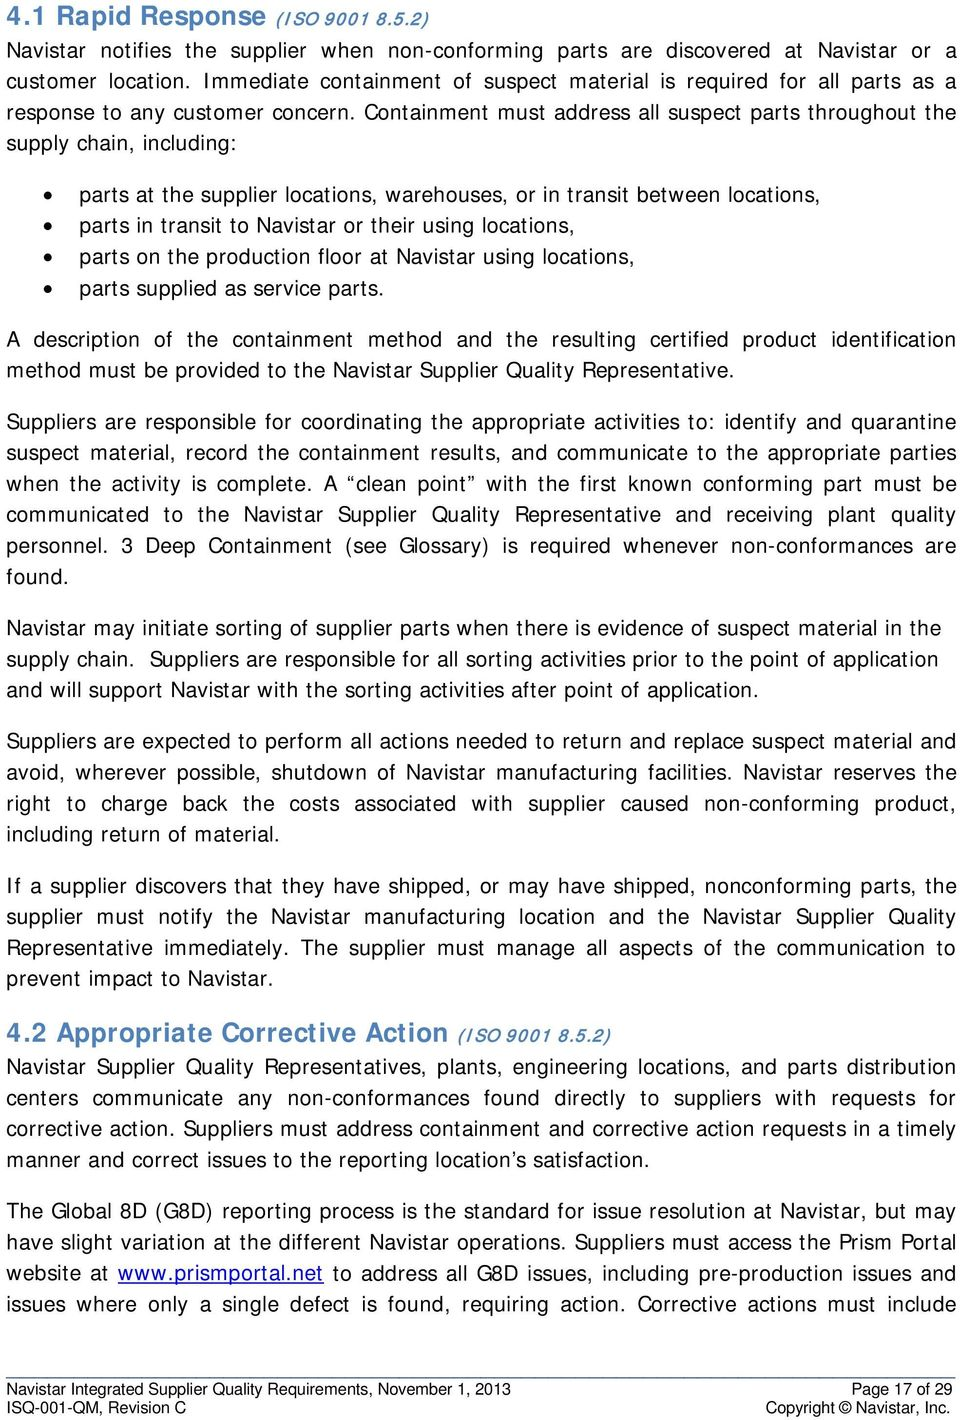 Integrated Supplier Quality Requirements - PDF